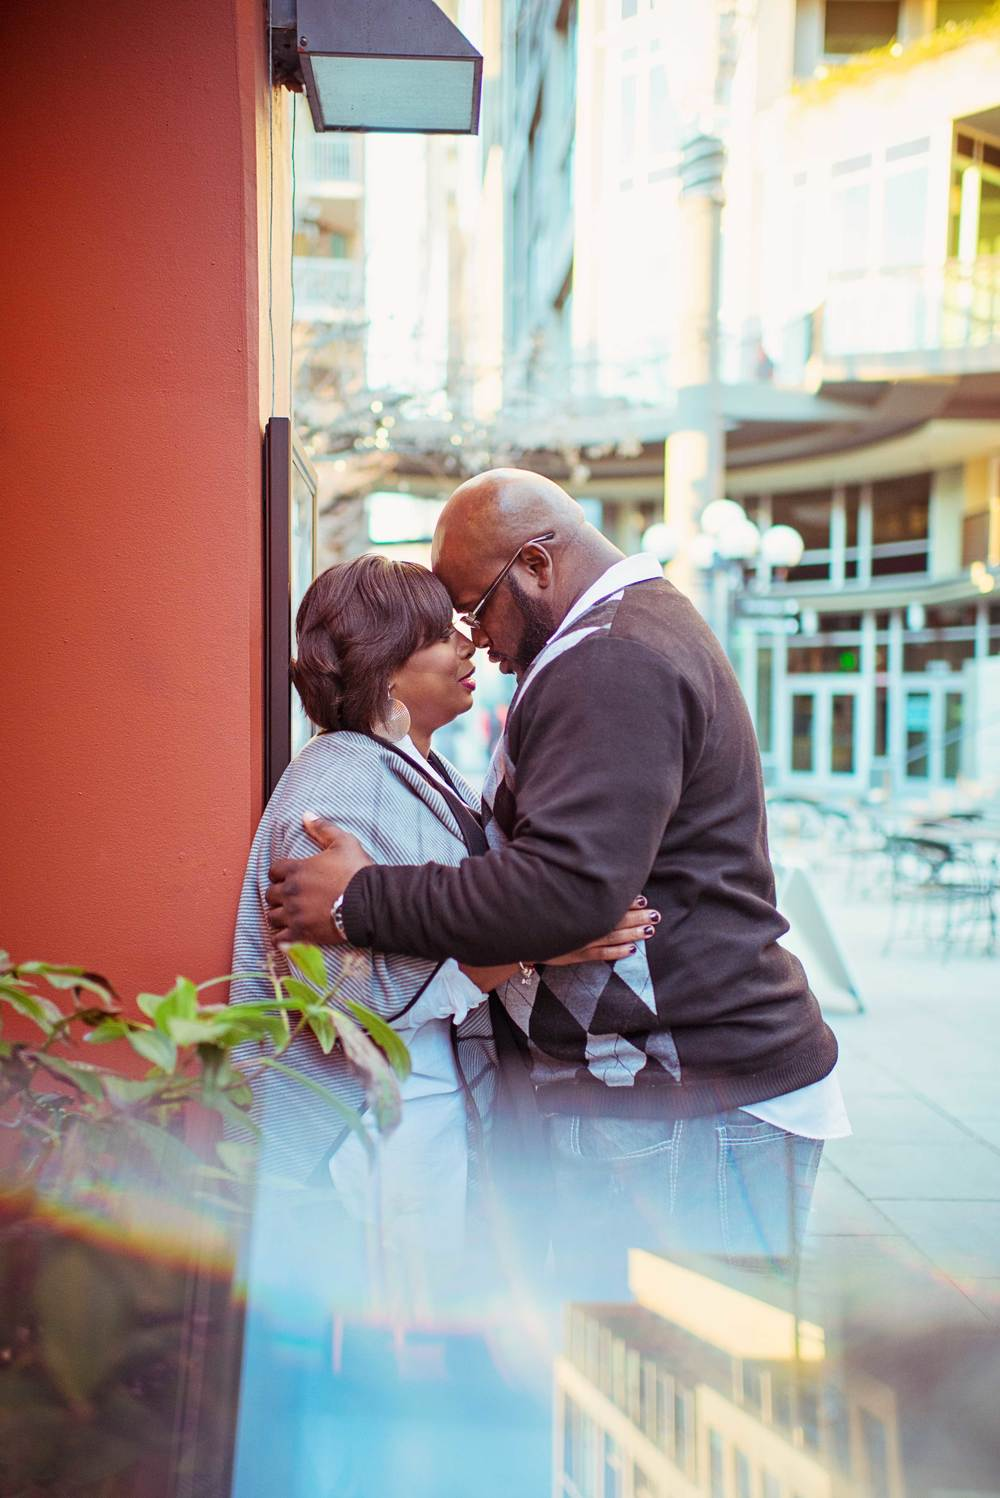 Rakisha + Jason_Seattle Public Library Engagement_Downtown Seattle Engagement_Urban Engagement_Kelsey Lane Photography_Seattle Wedding Photographer_Seattle Engagement Photographer_26